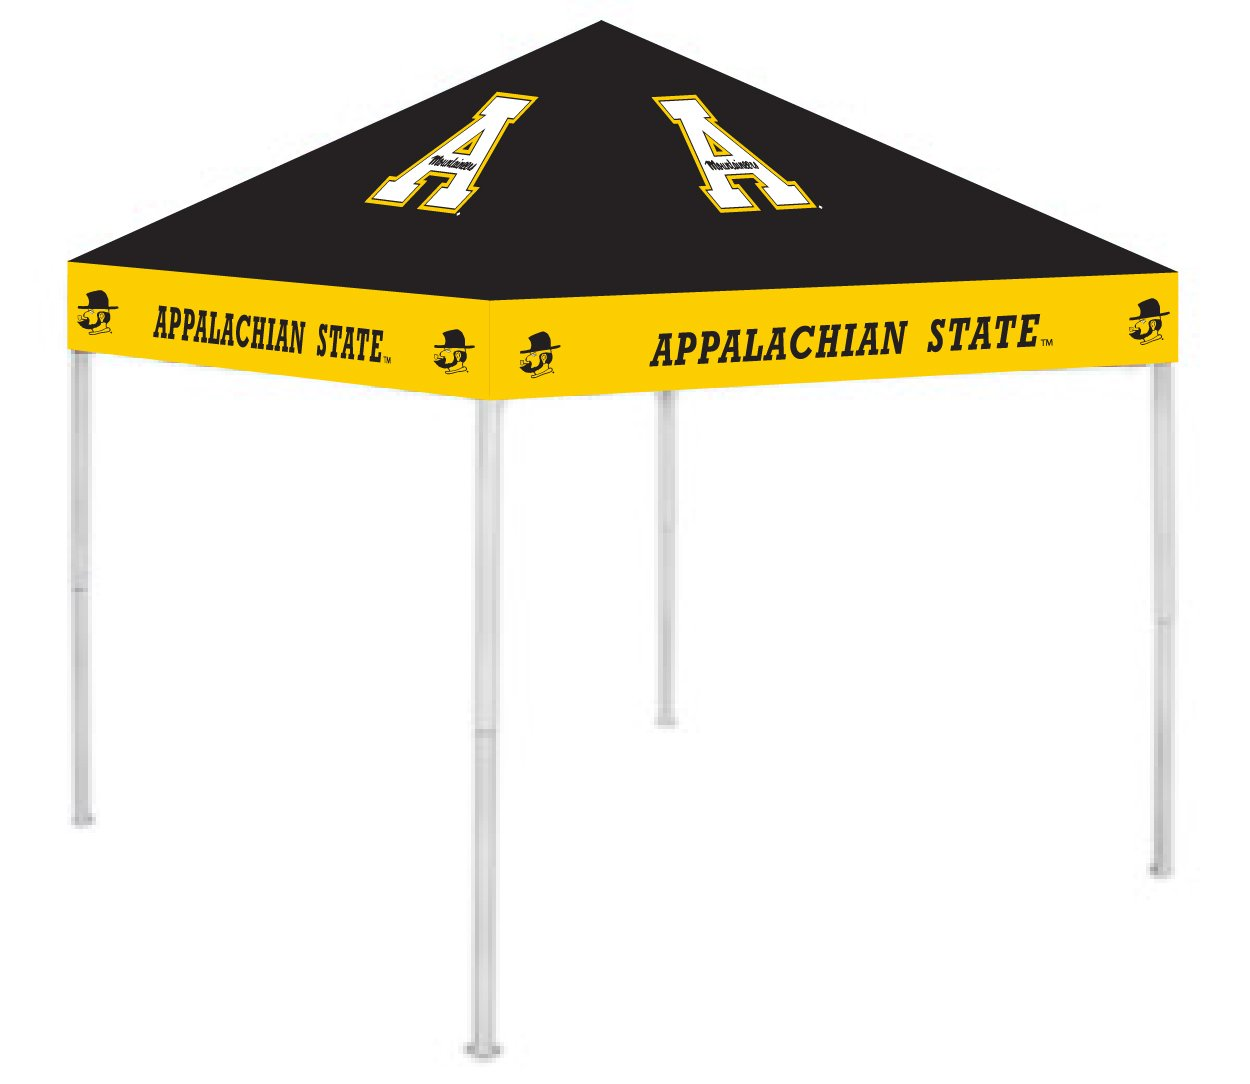 Rivalry RV108-5000 Appalachian State Canopy B003XKF0F4 9 x 9|Appalachian State Mountaineers Appalachian State Mountaineers 9 x 9